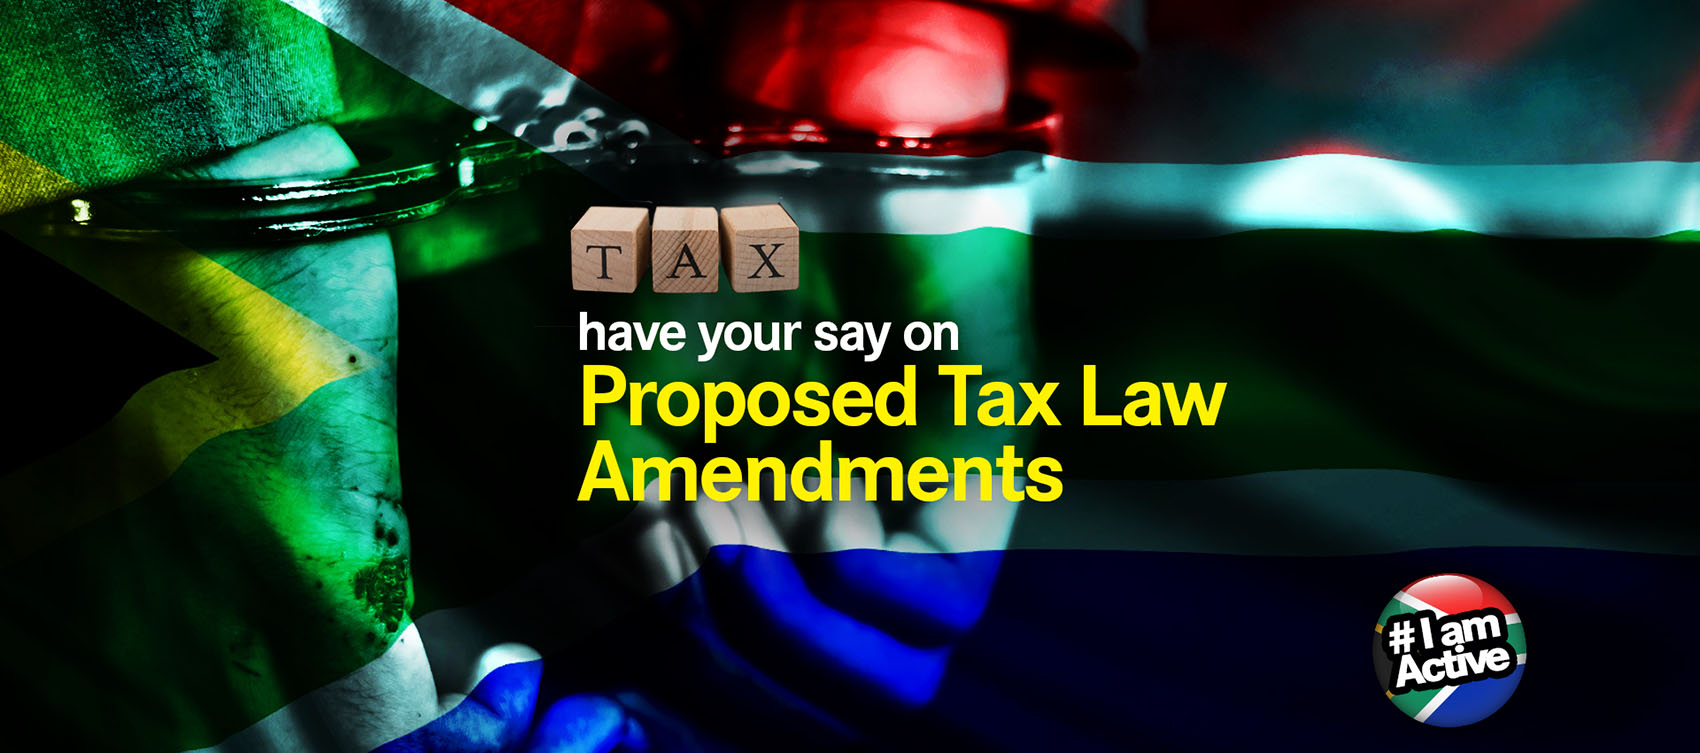 tax-law-amendments-DearSA